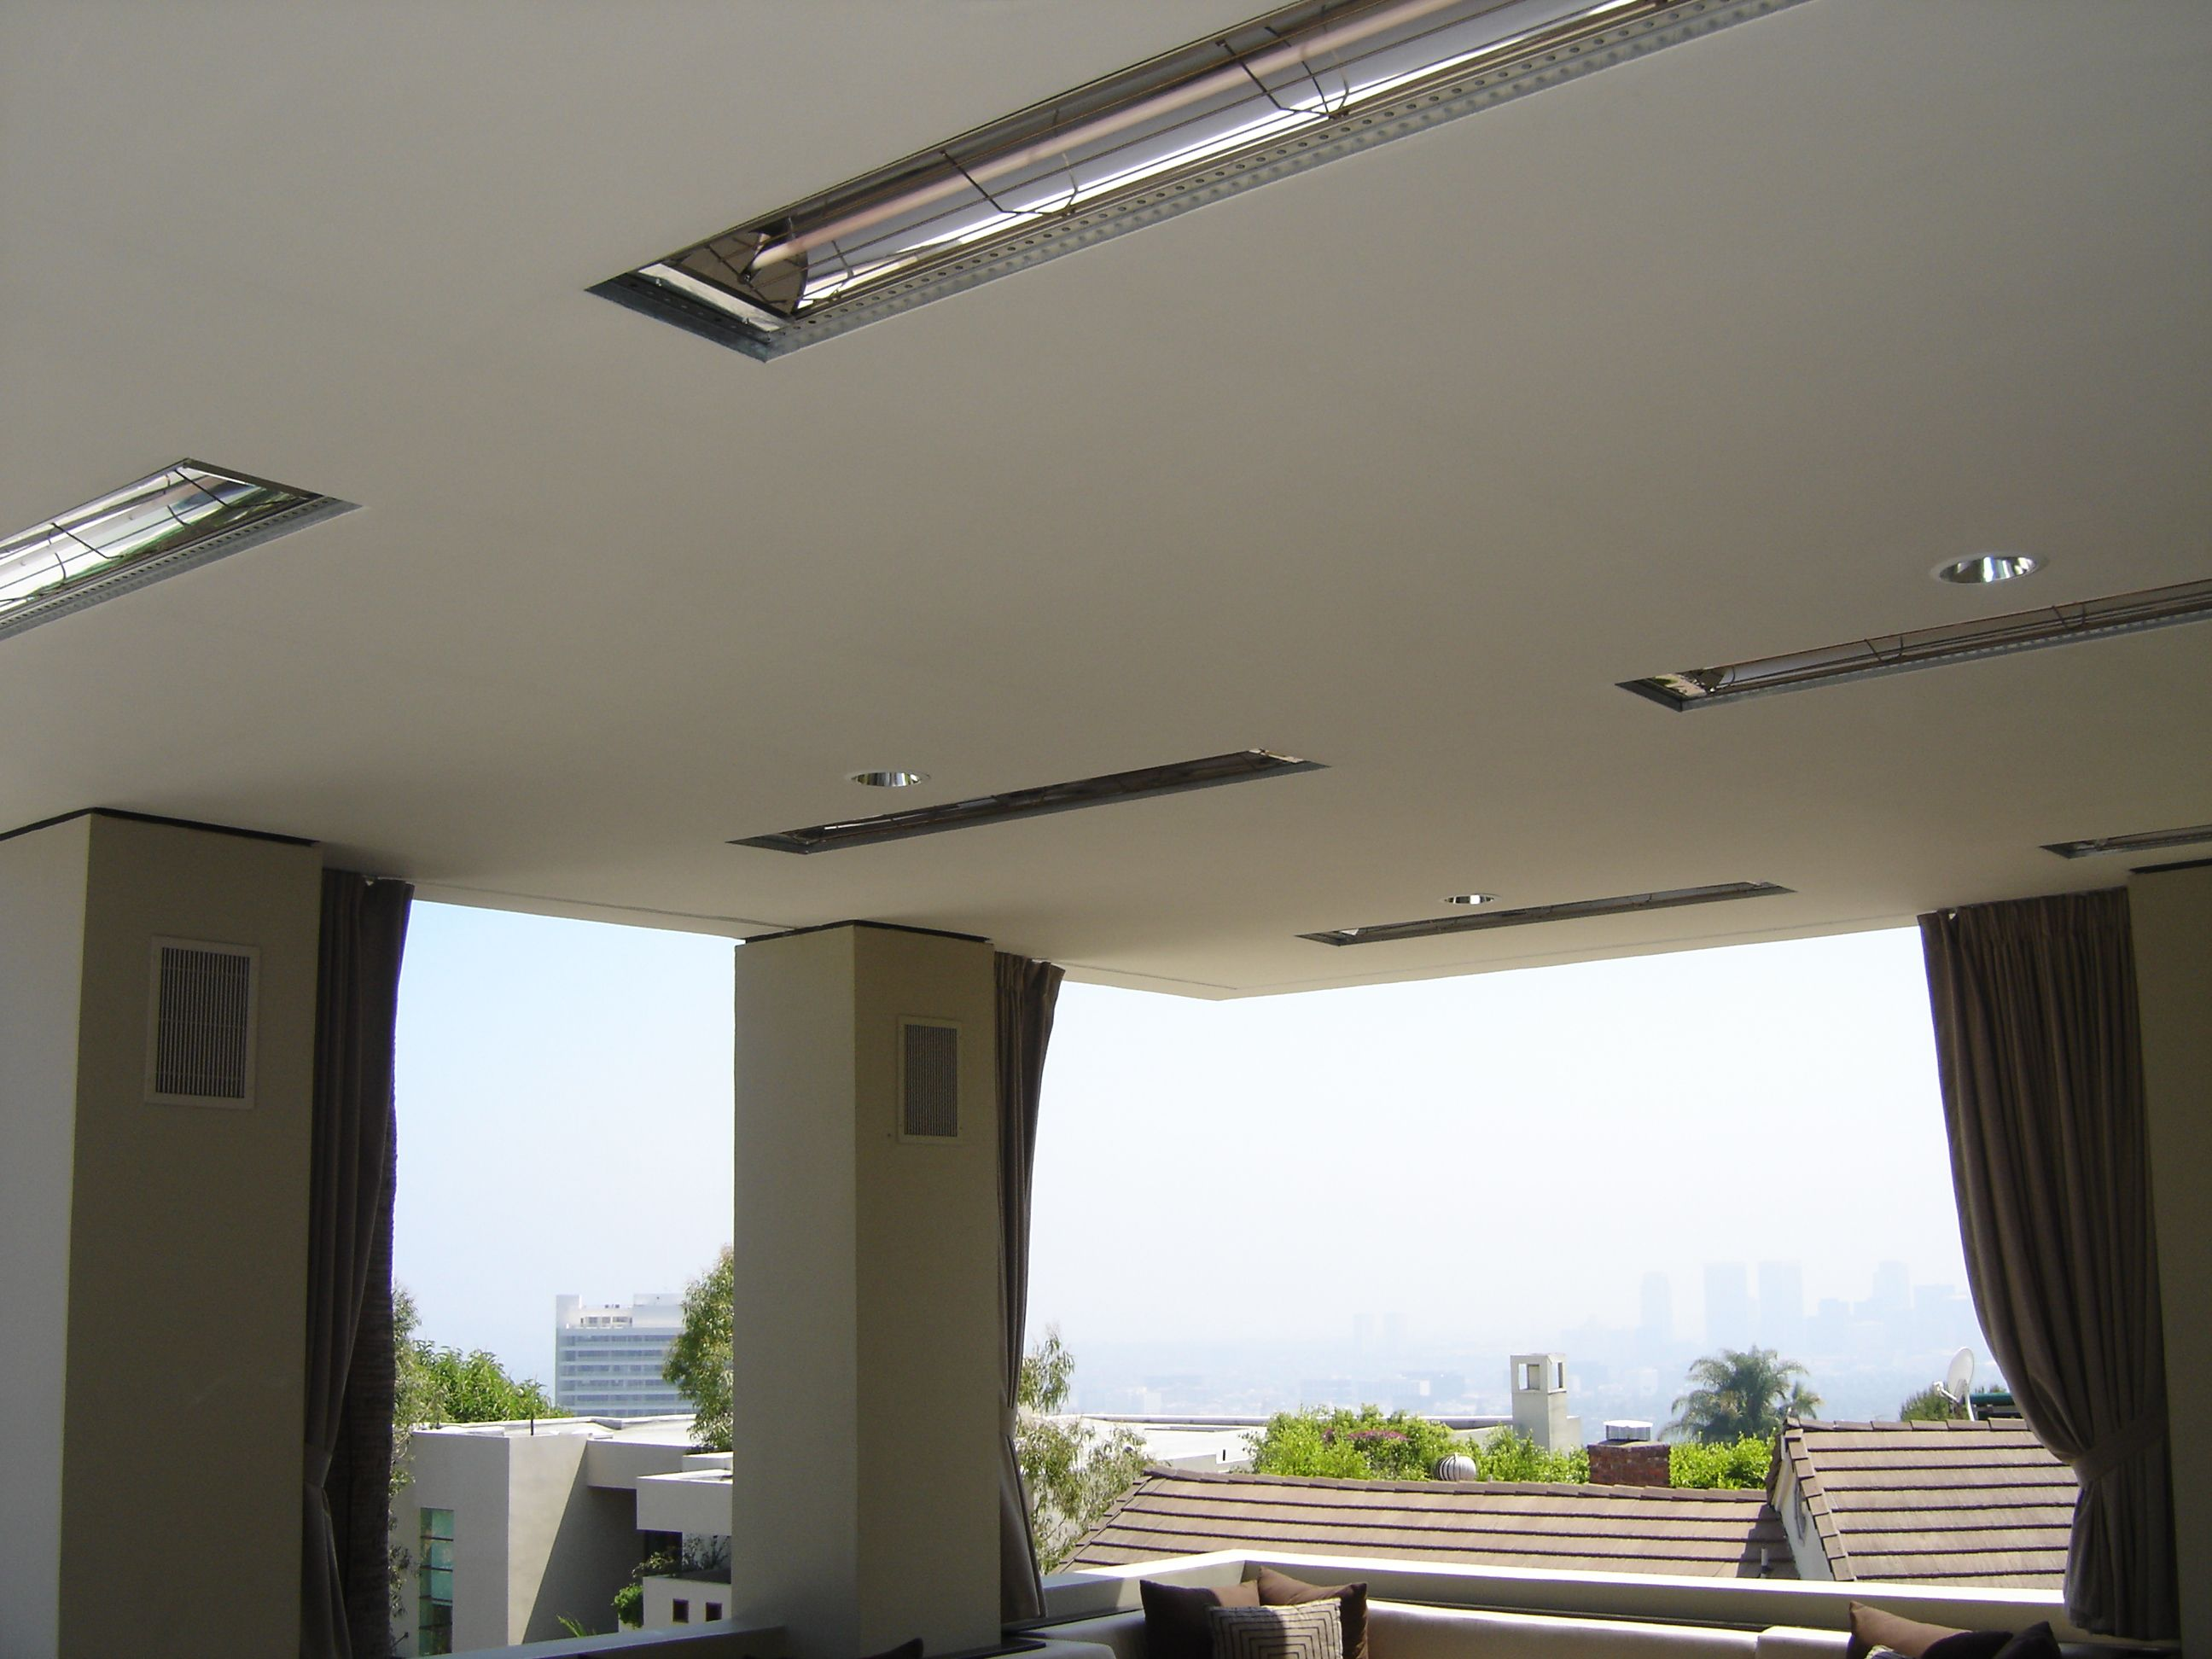 Merveilleux Flush Mounted Heaters In Patio Ceiling Outdoor Electric Heater, Outdoor  Heaters, Patio Heater,